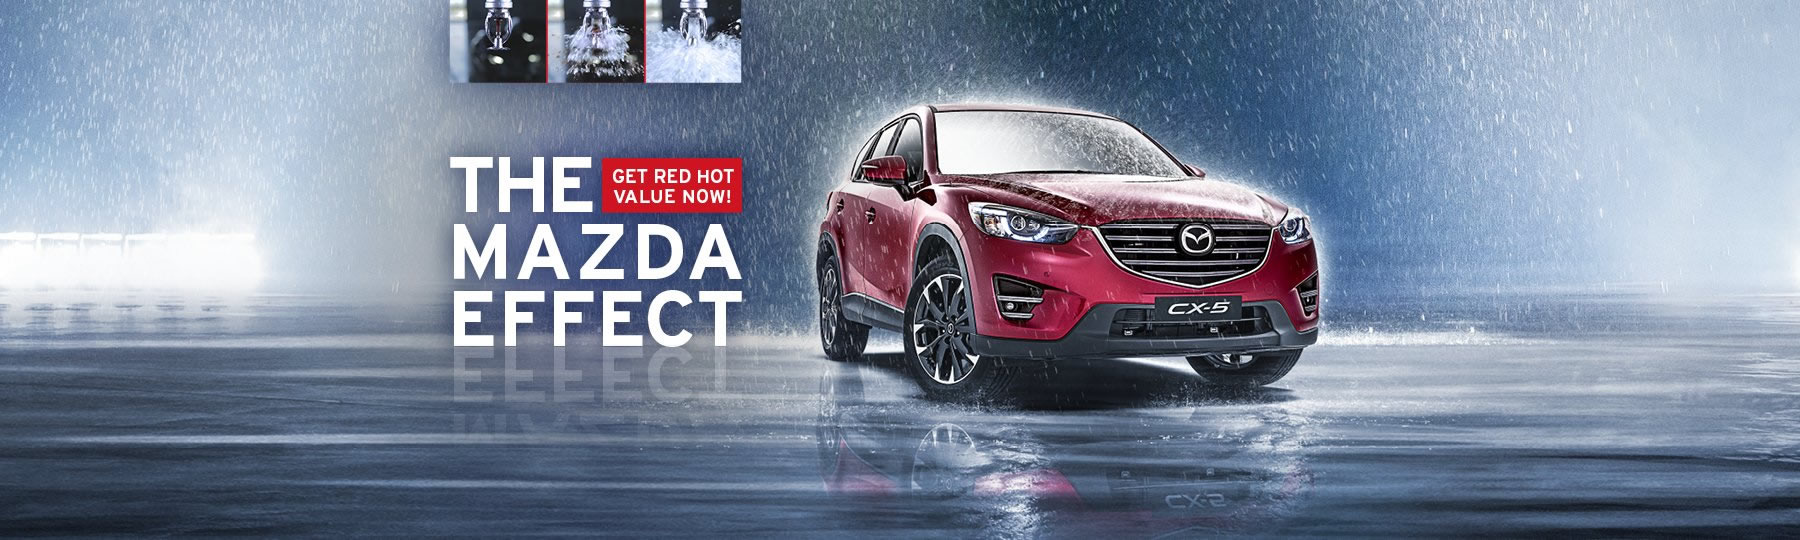 Mazda Factory Offer